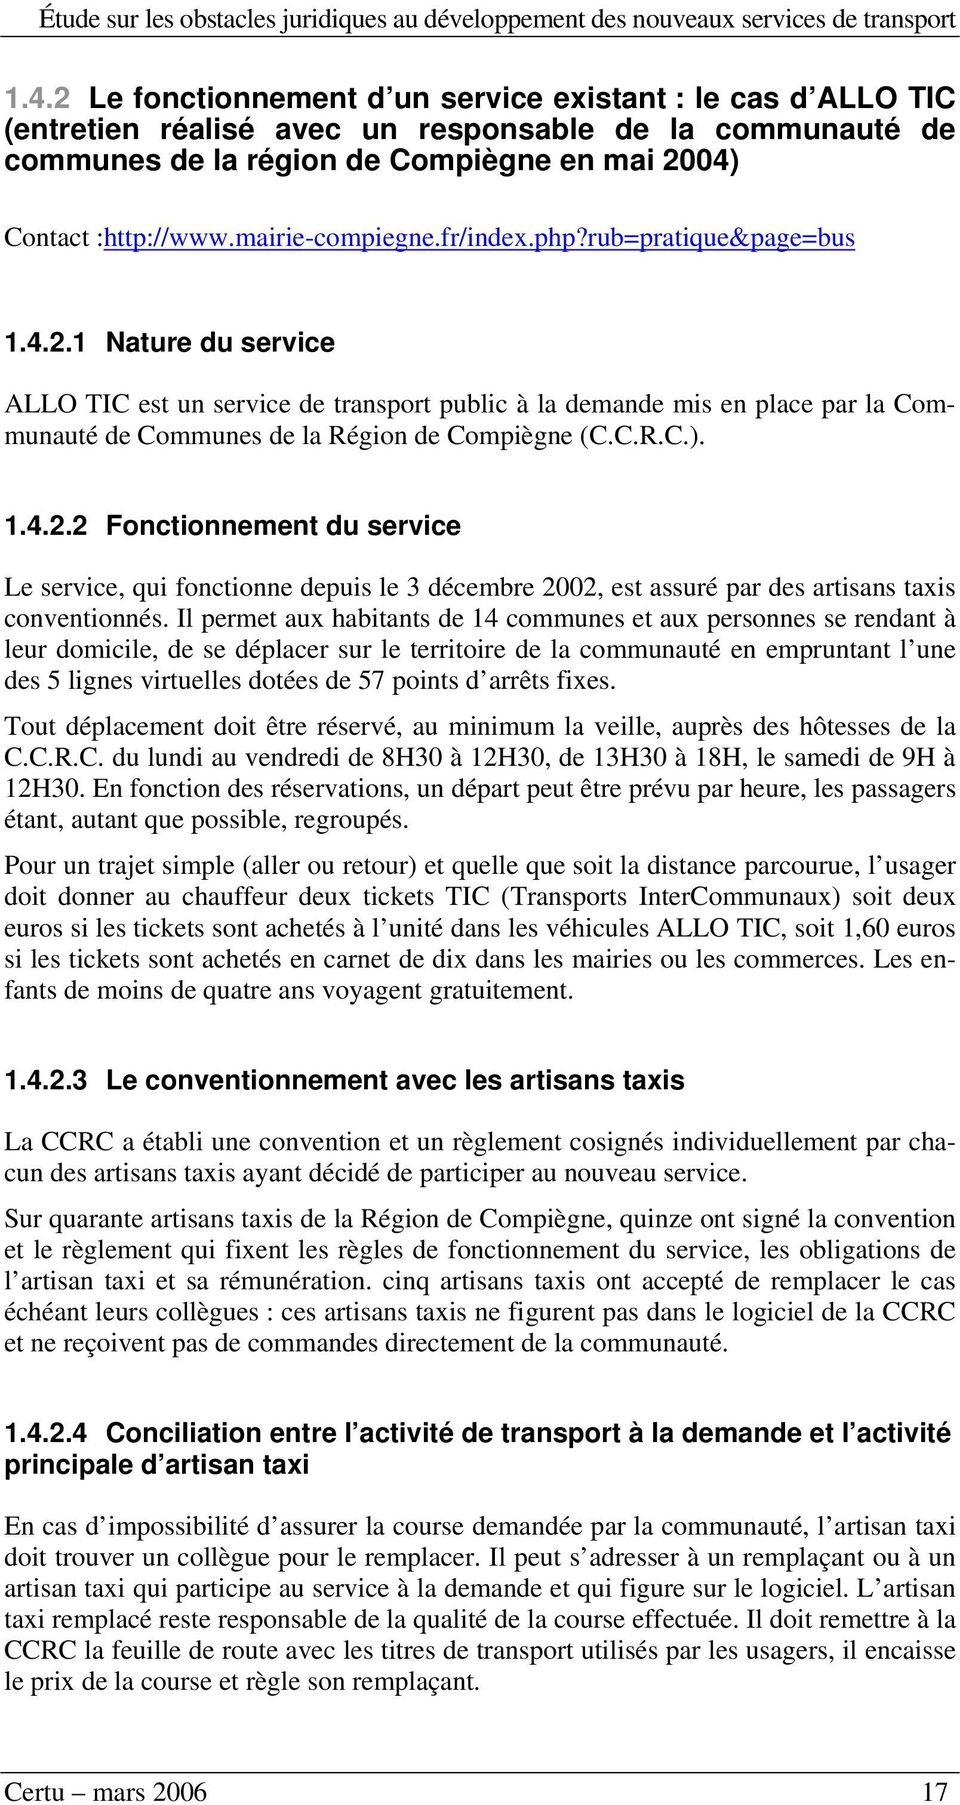 mairie-compiegne.fr/index.php?rub=pratique&page=bus 1.4.2.